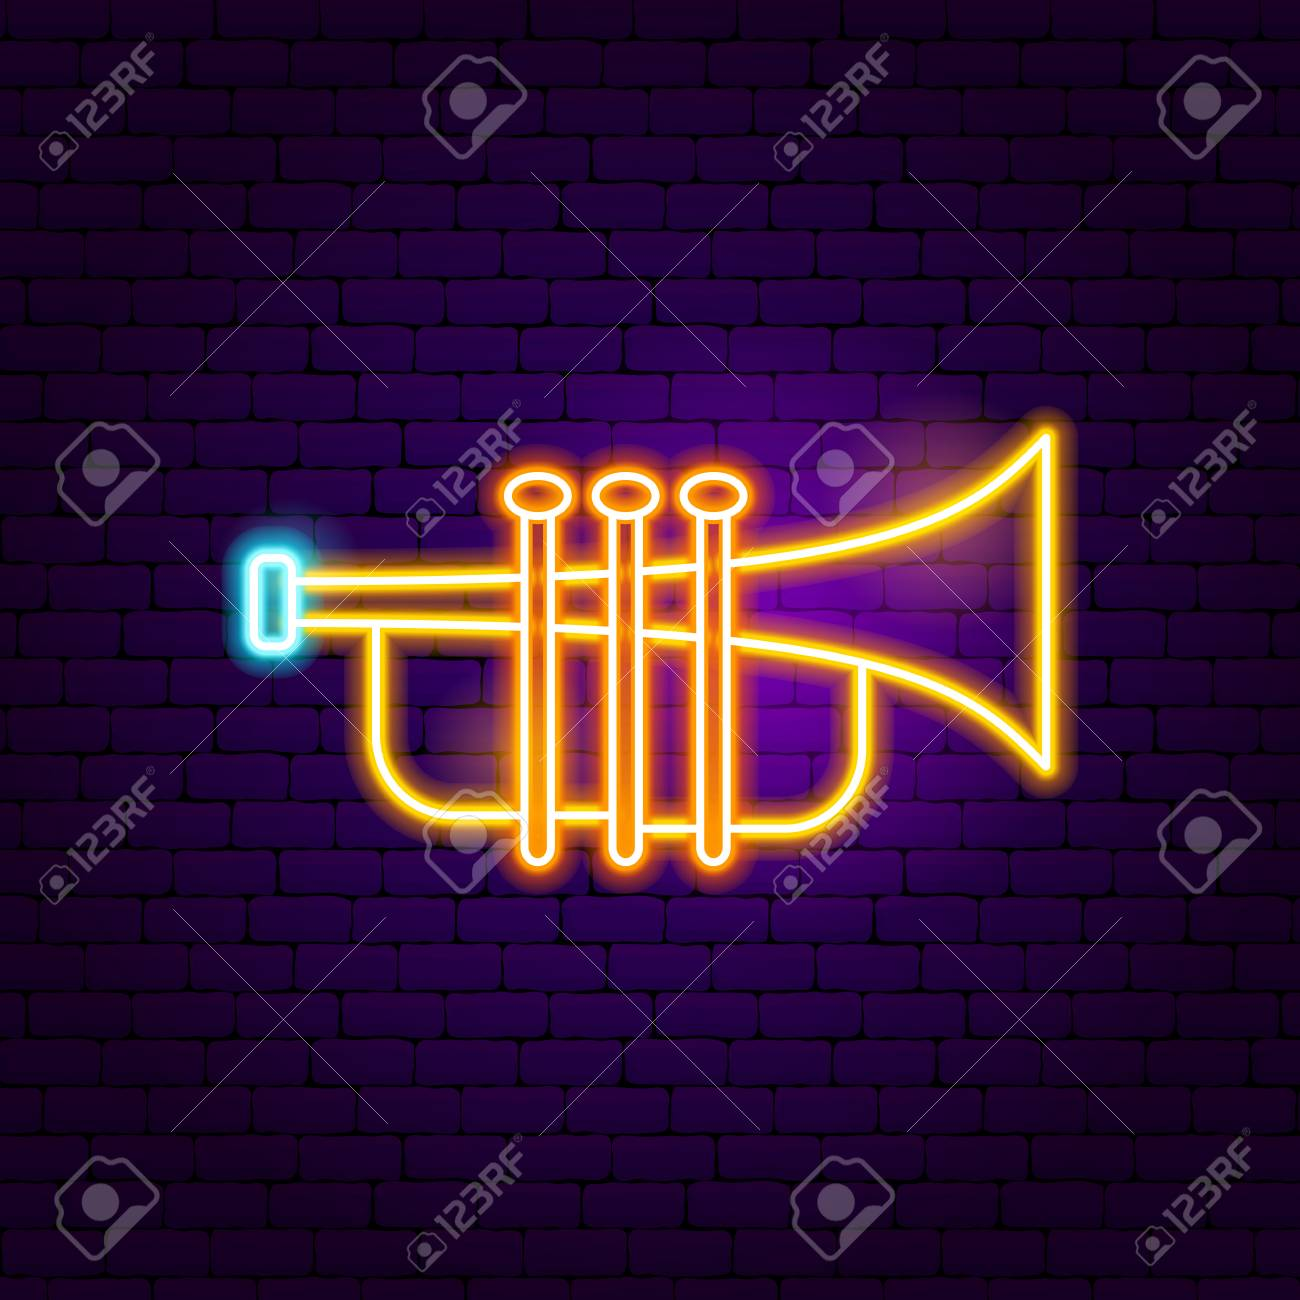 Trumpet Neon Sign  Vector Illustration of Music Promotion